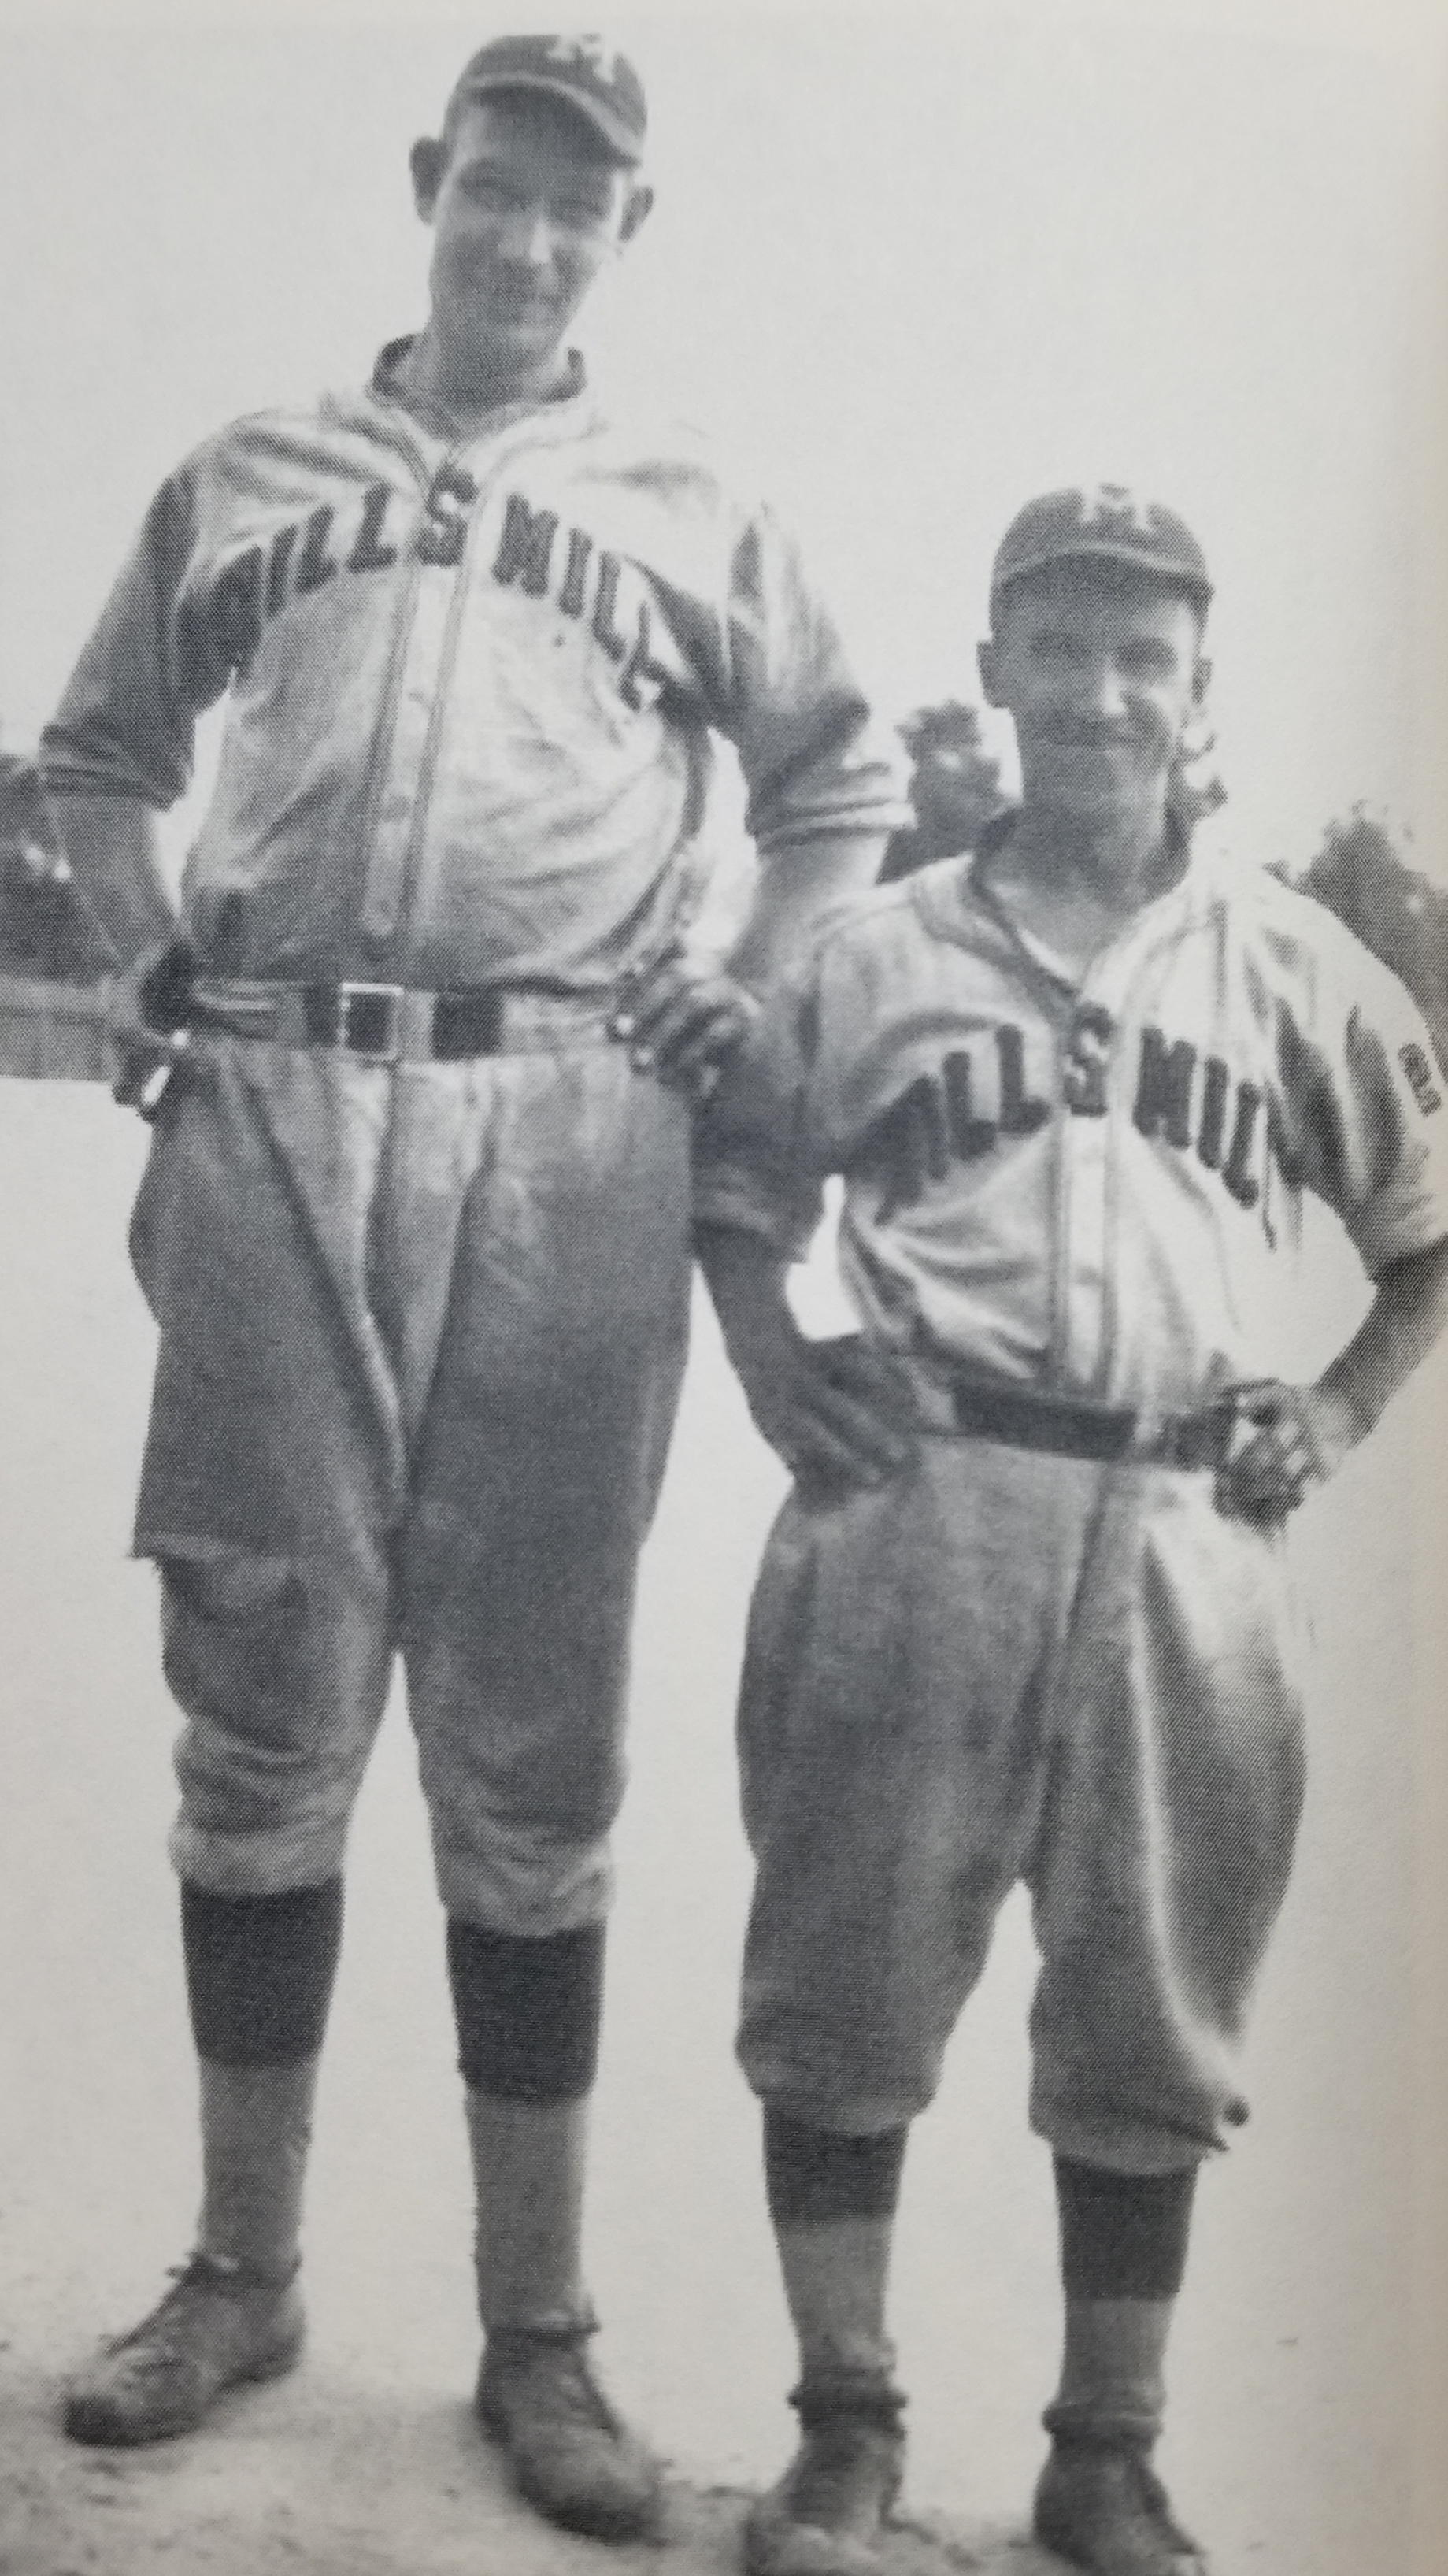 Part Eight - Fruits of the Looms: With Legendary Players, Rivalries, Remarkable Feats, and Urban Legends, Textile Leagues Forever Shaped the Game of Baseball in Woodruff